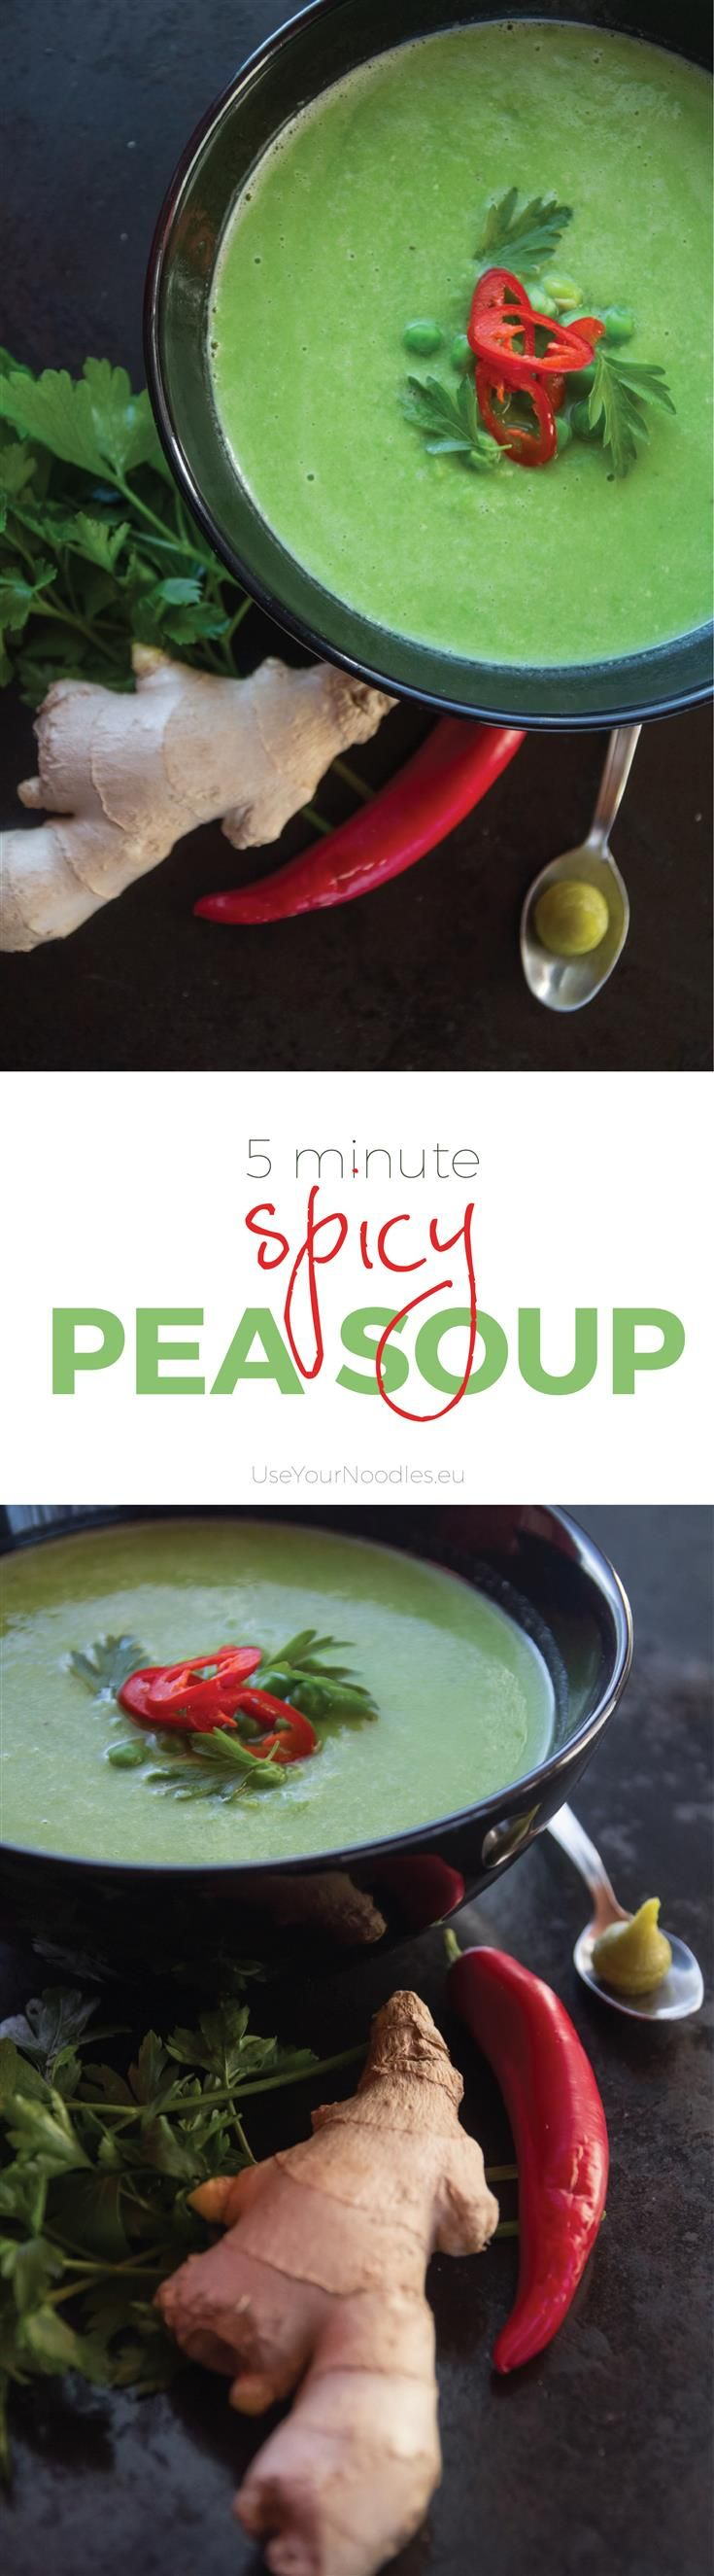 Spicy Pea Soup. Recipe for delicious pea soup with ginger, wasabi and chilli.